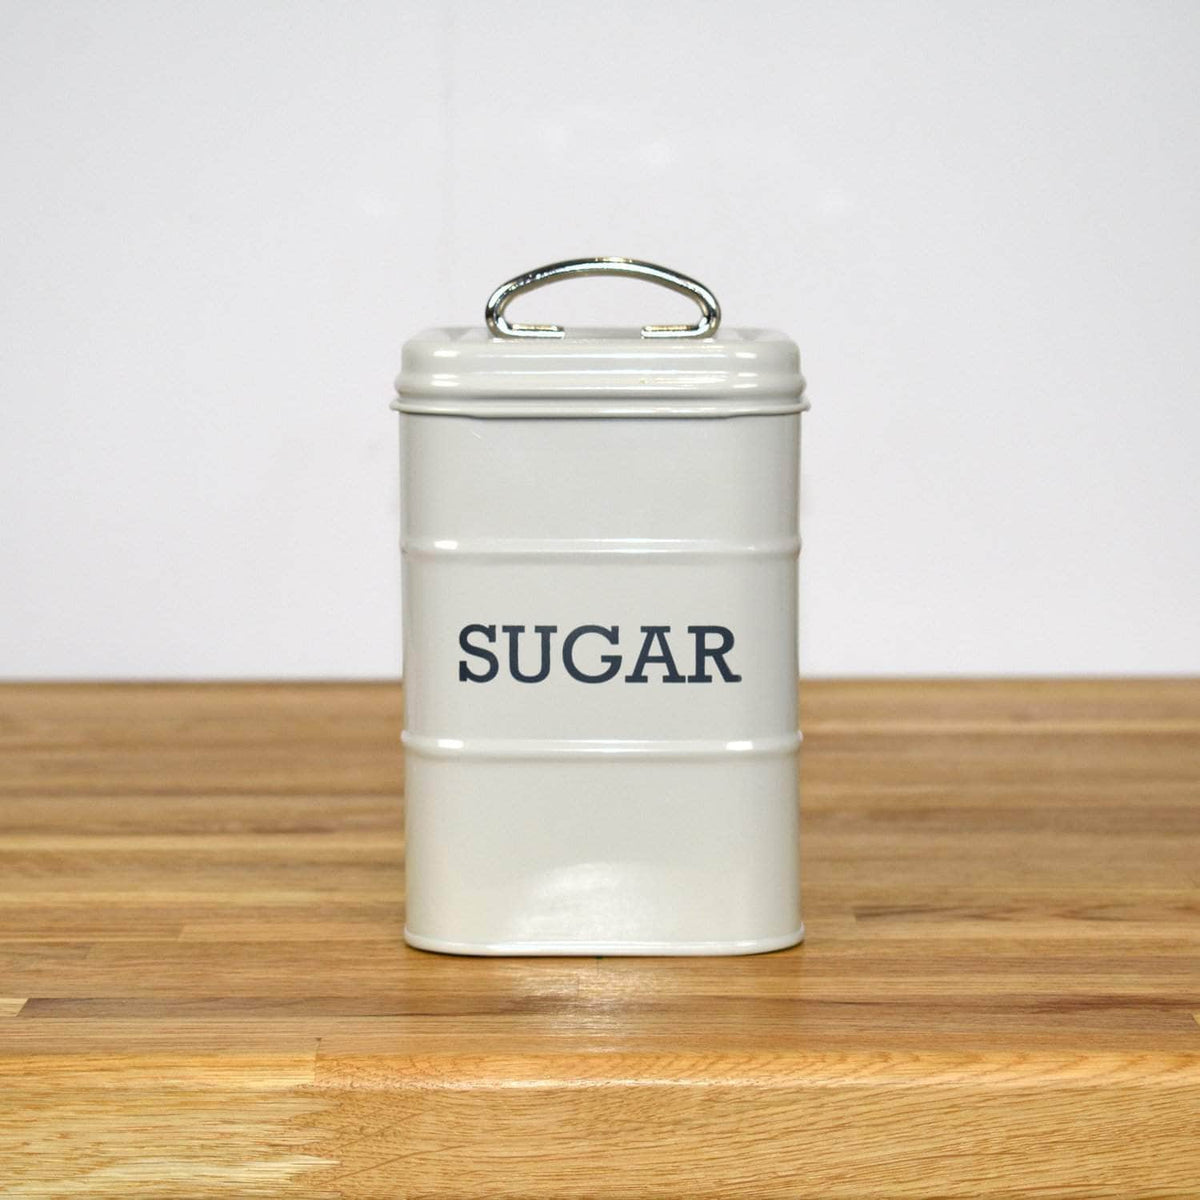 *Not quite perfect* Steel sugar canister in French grey